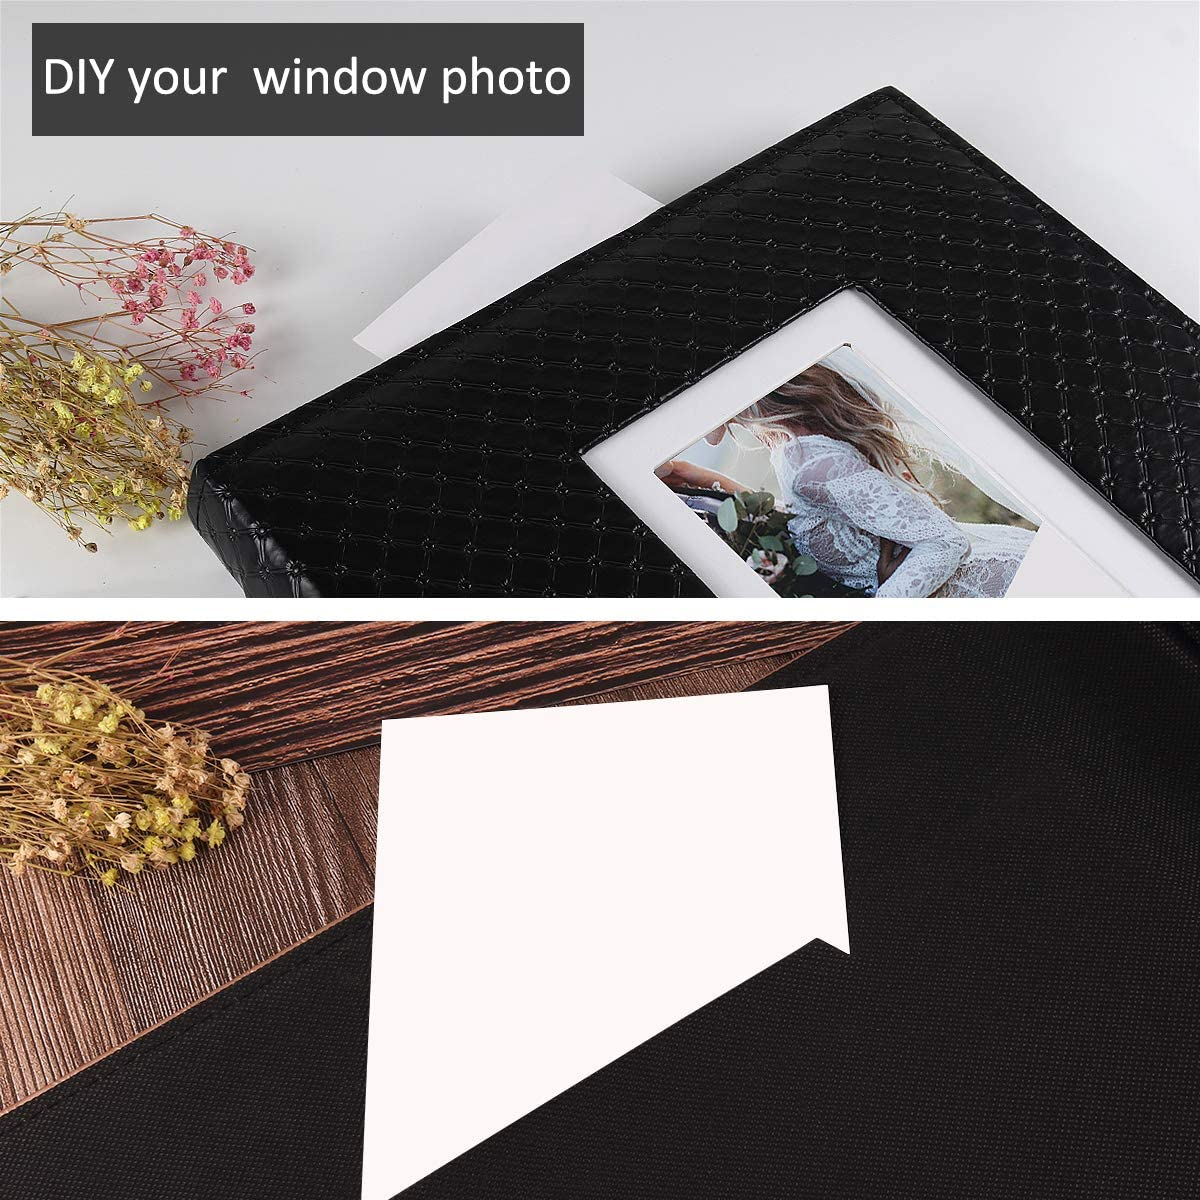 Light Champagne RECUTMS Photo Album 4x6 600 Photos Black Inner Page Button Grain Leather Big Capacity Pockets Pictures Album Birthday Christmas Photo Albums Wedding Anniversary